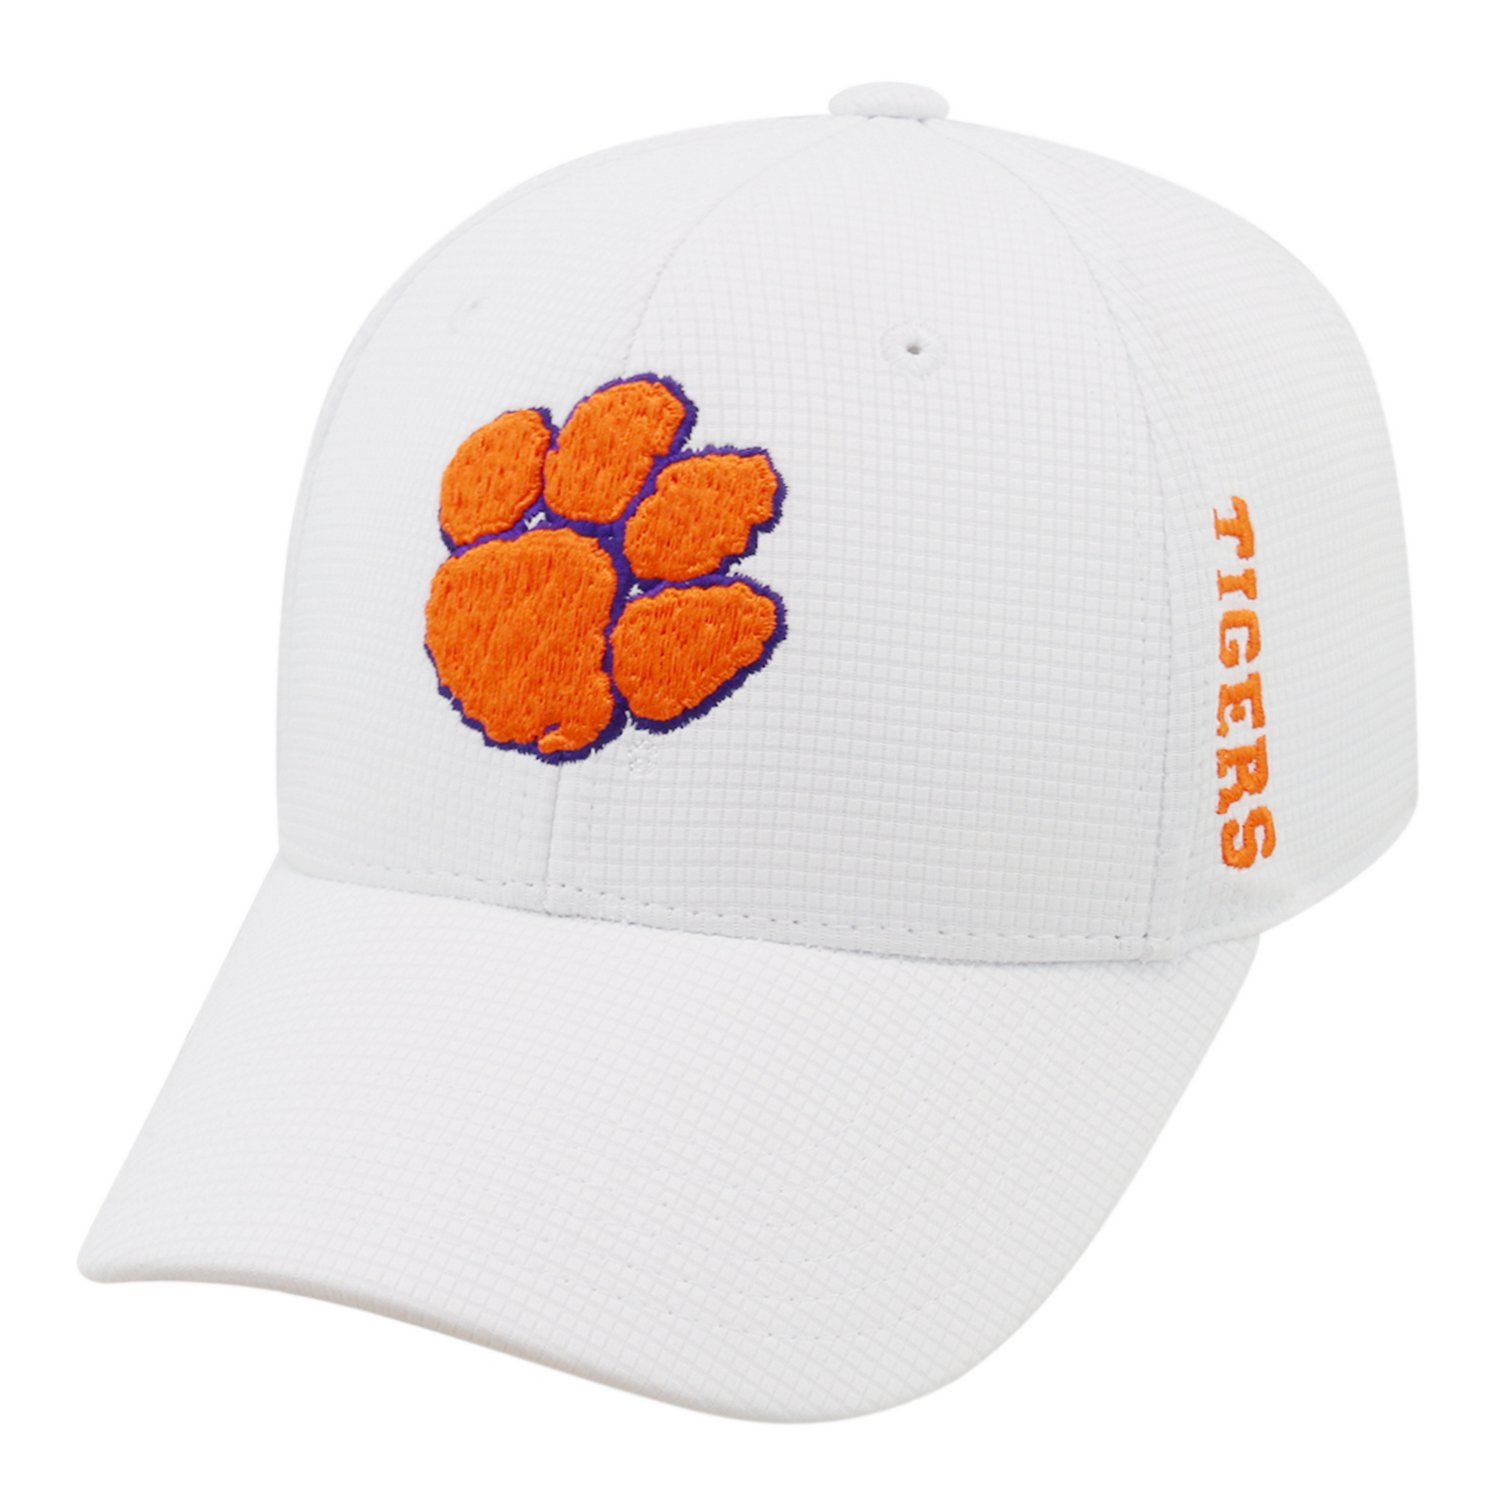 reputable site 43bab e295d Top of the World Men s Clemson University Booster Plus Flex Cap   Academy